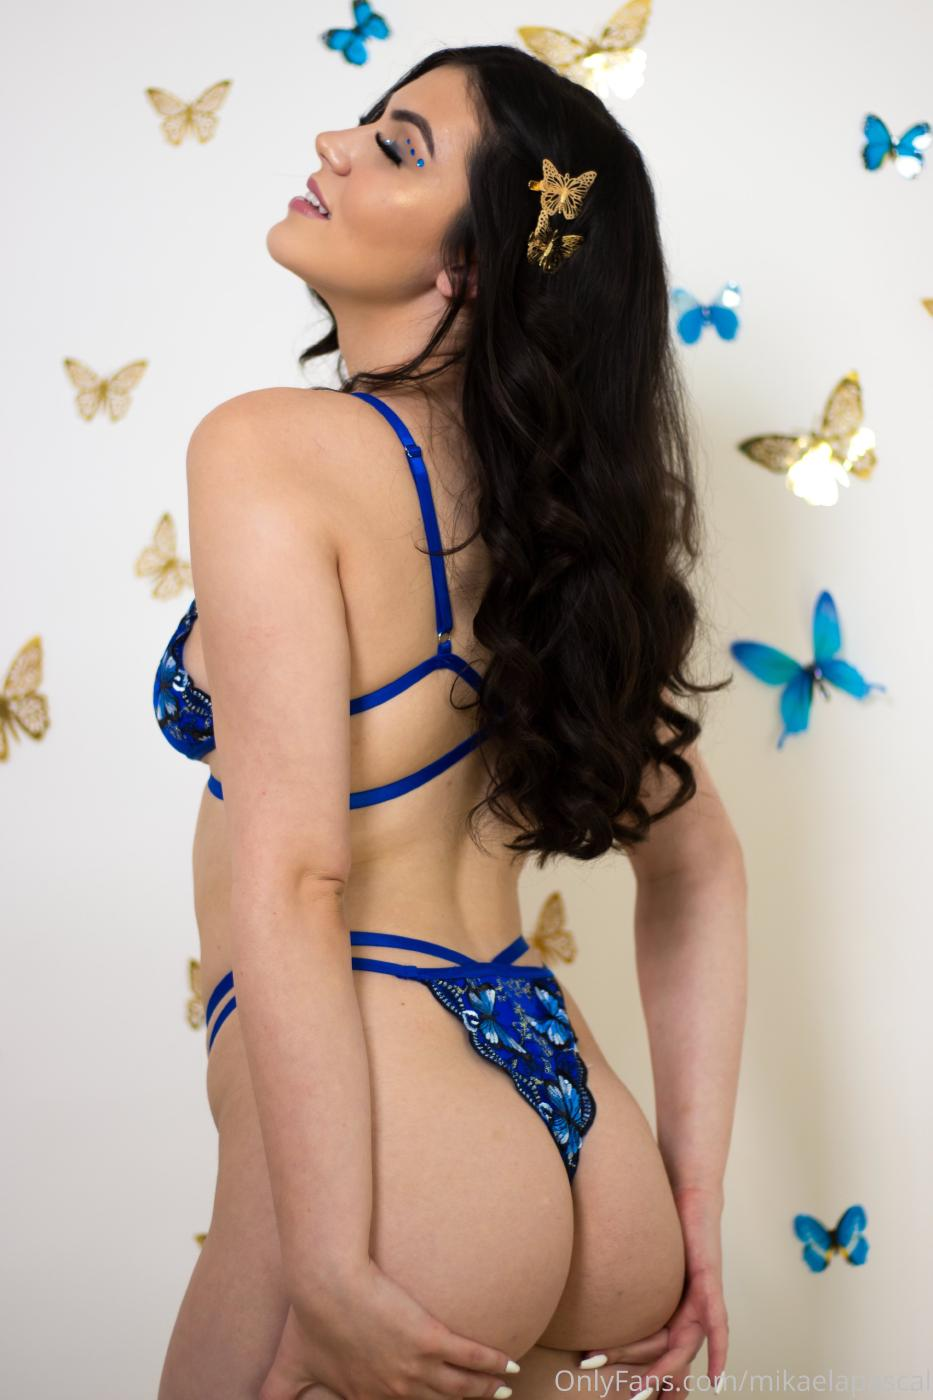 Mikaela Pascal Butterfly Onlyfans Set Leaked0003